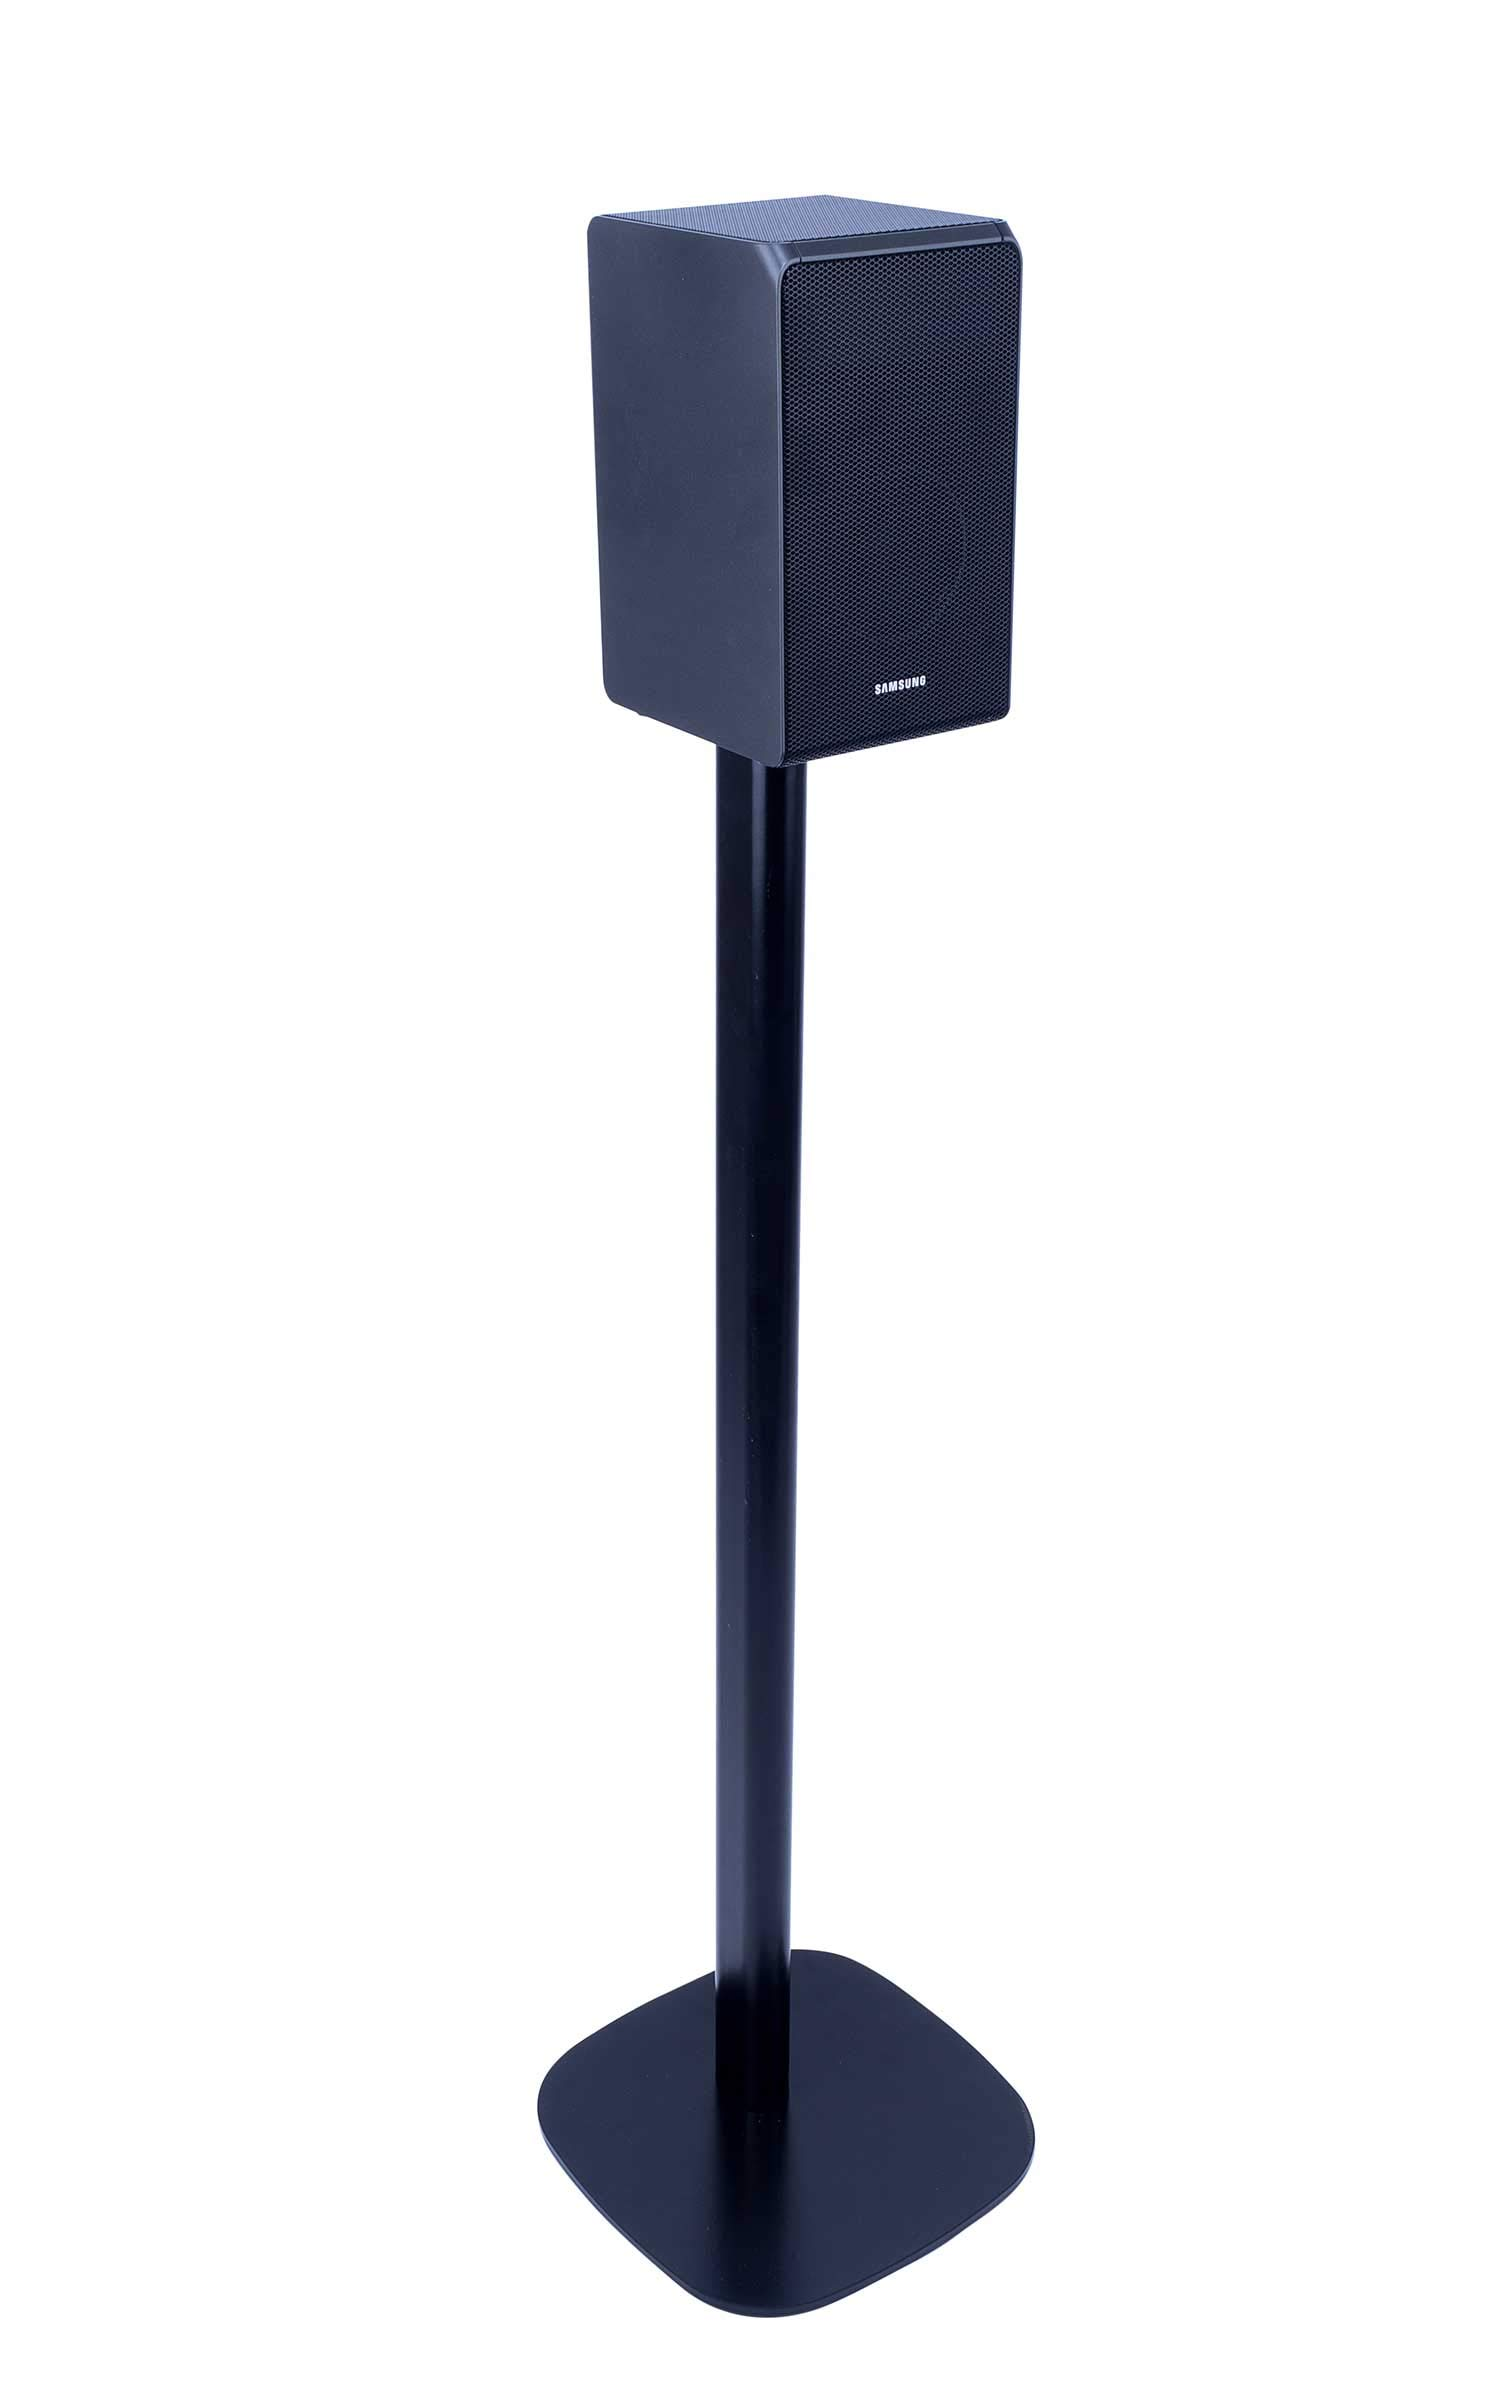 Vebos Floor Stand Samsung HW-N950 Black en Optimal Experience in Every Room - Allows You to Place Your Samsung HW-N950 Exactly Where You Want it - Two Years Warranty by Vebos